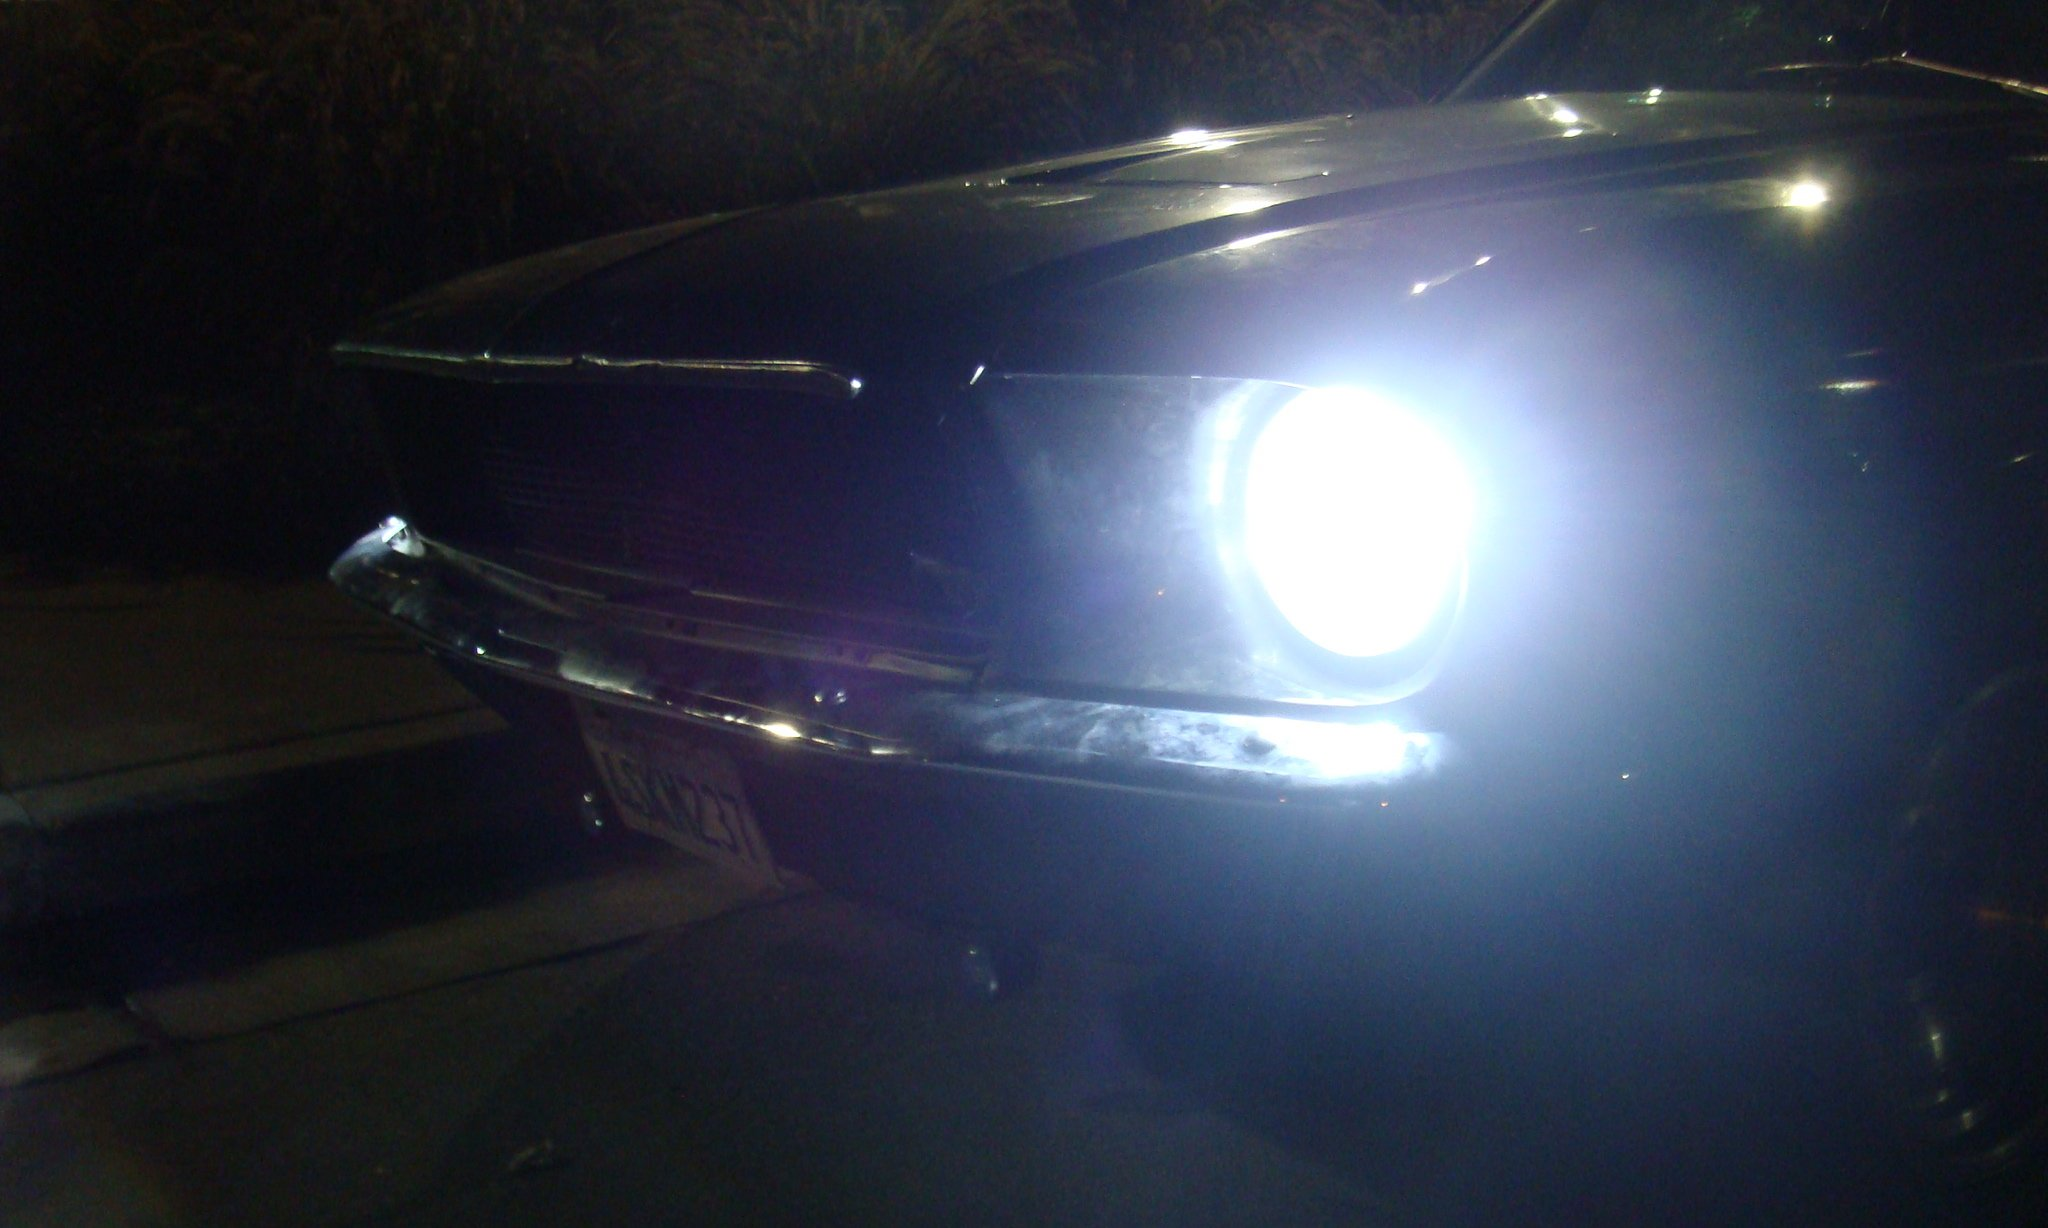 Hid Headlights In A 1969 Mustang Coupe Ford Mustang Forum